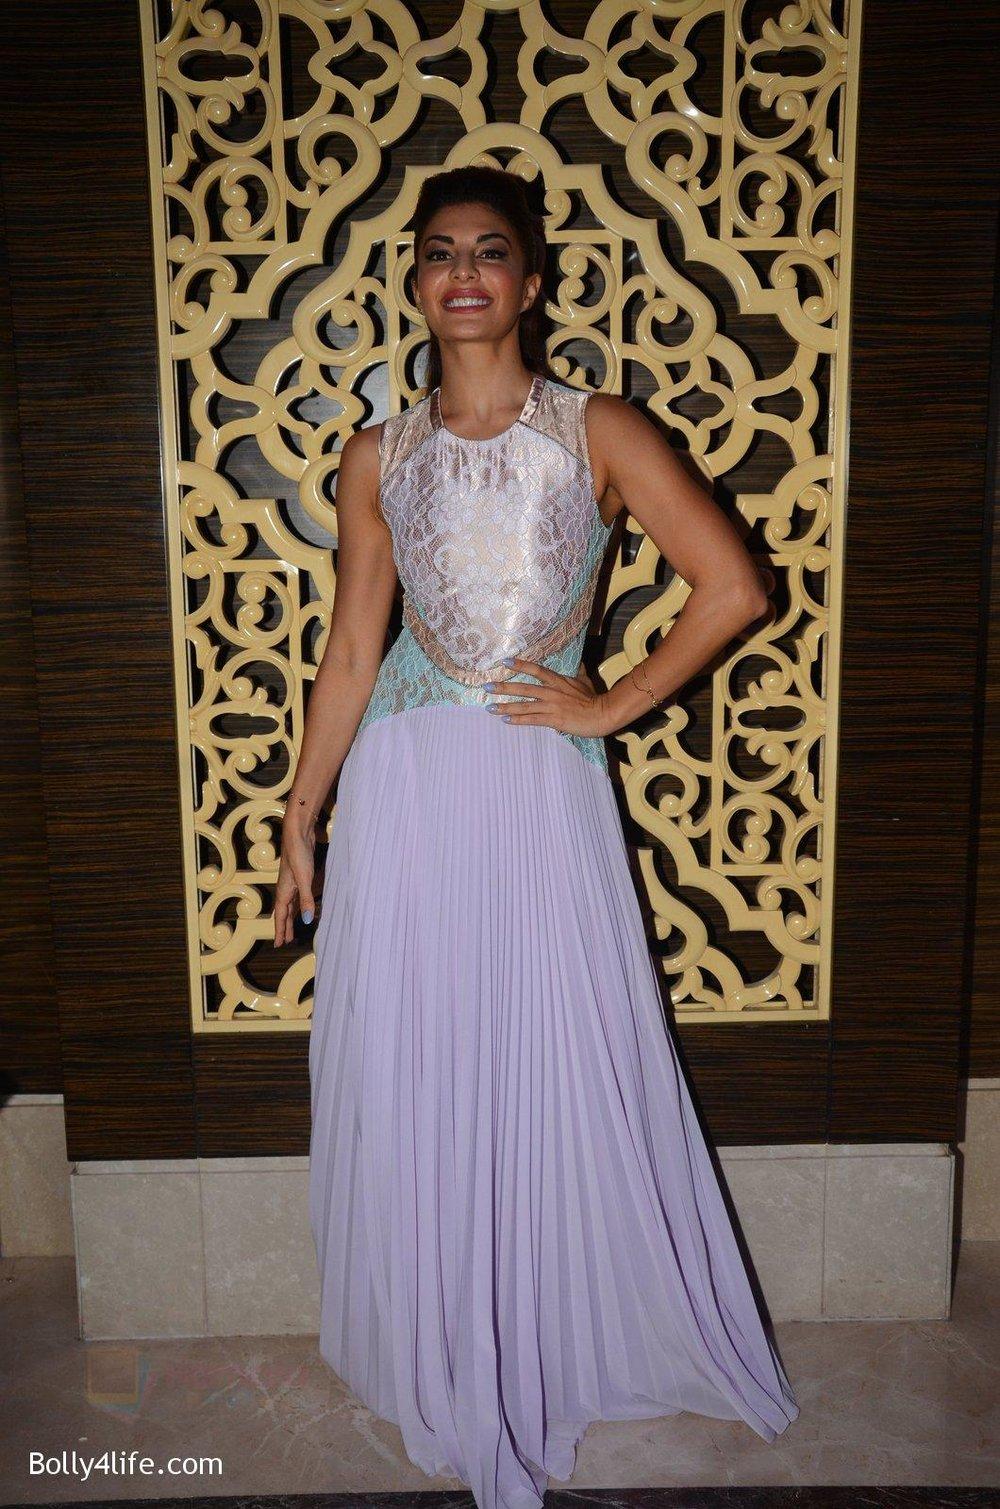 Jacqueline-Fernandez-at-W-Goa-launch-party-on-7th-Oct-2016-89.jpg